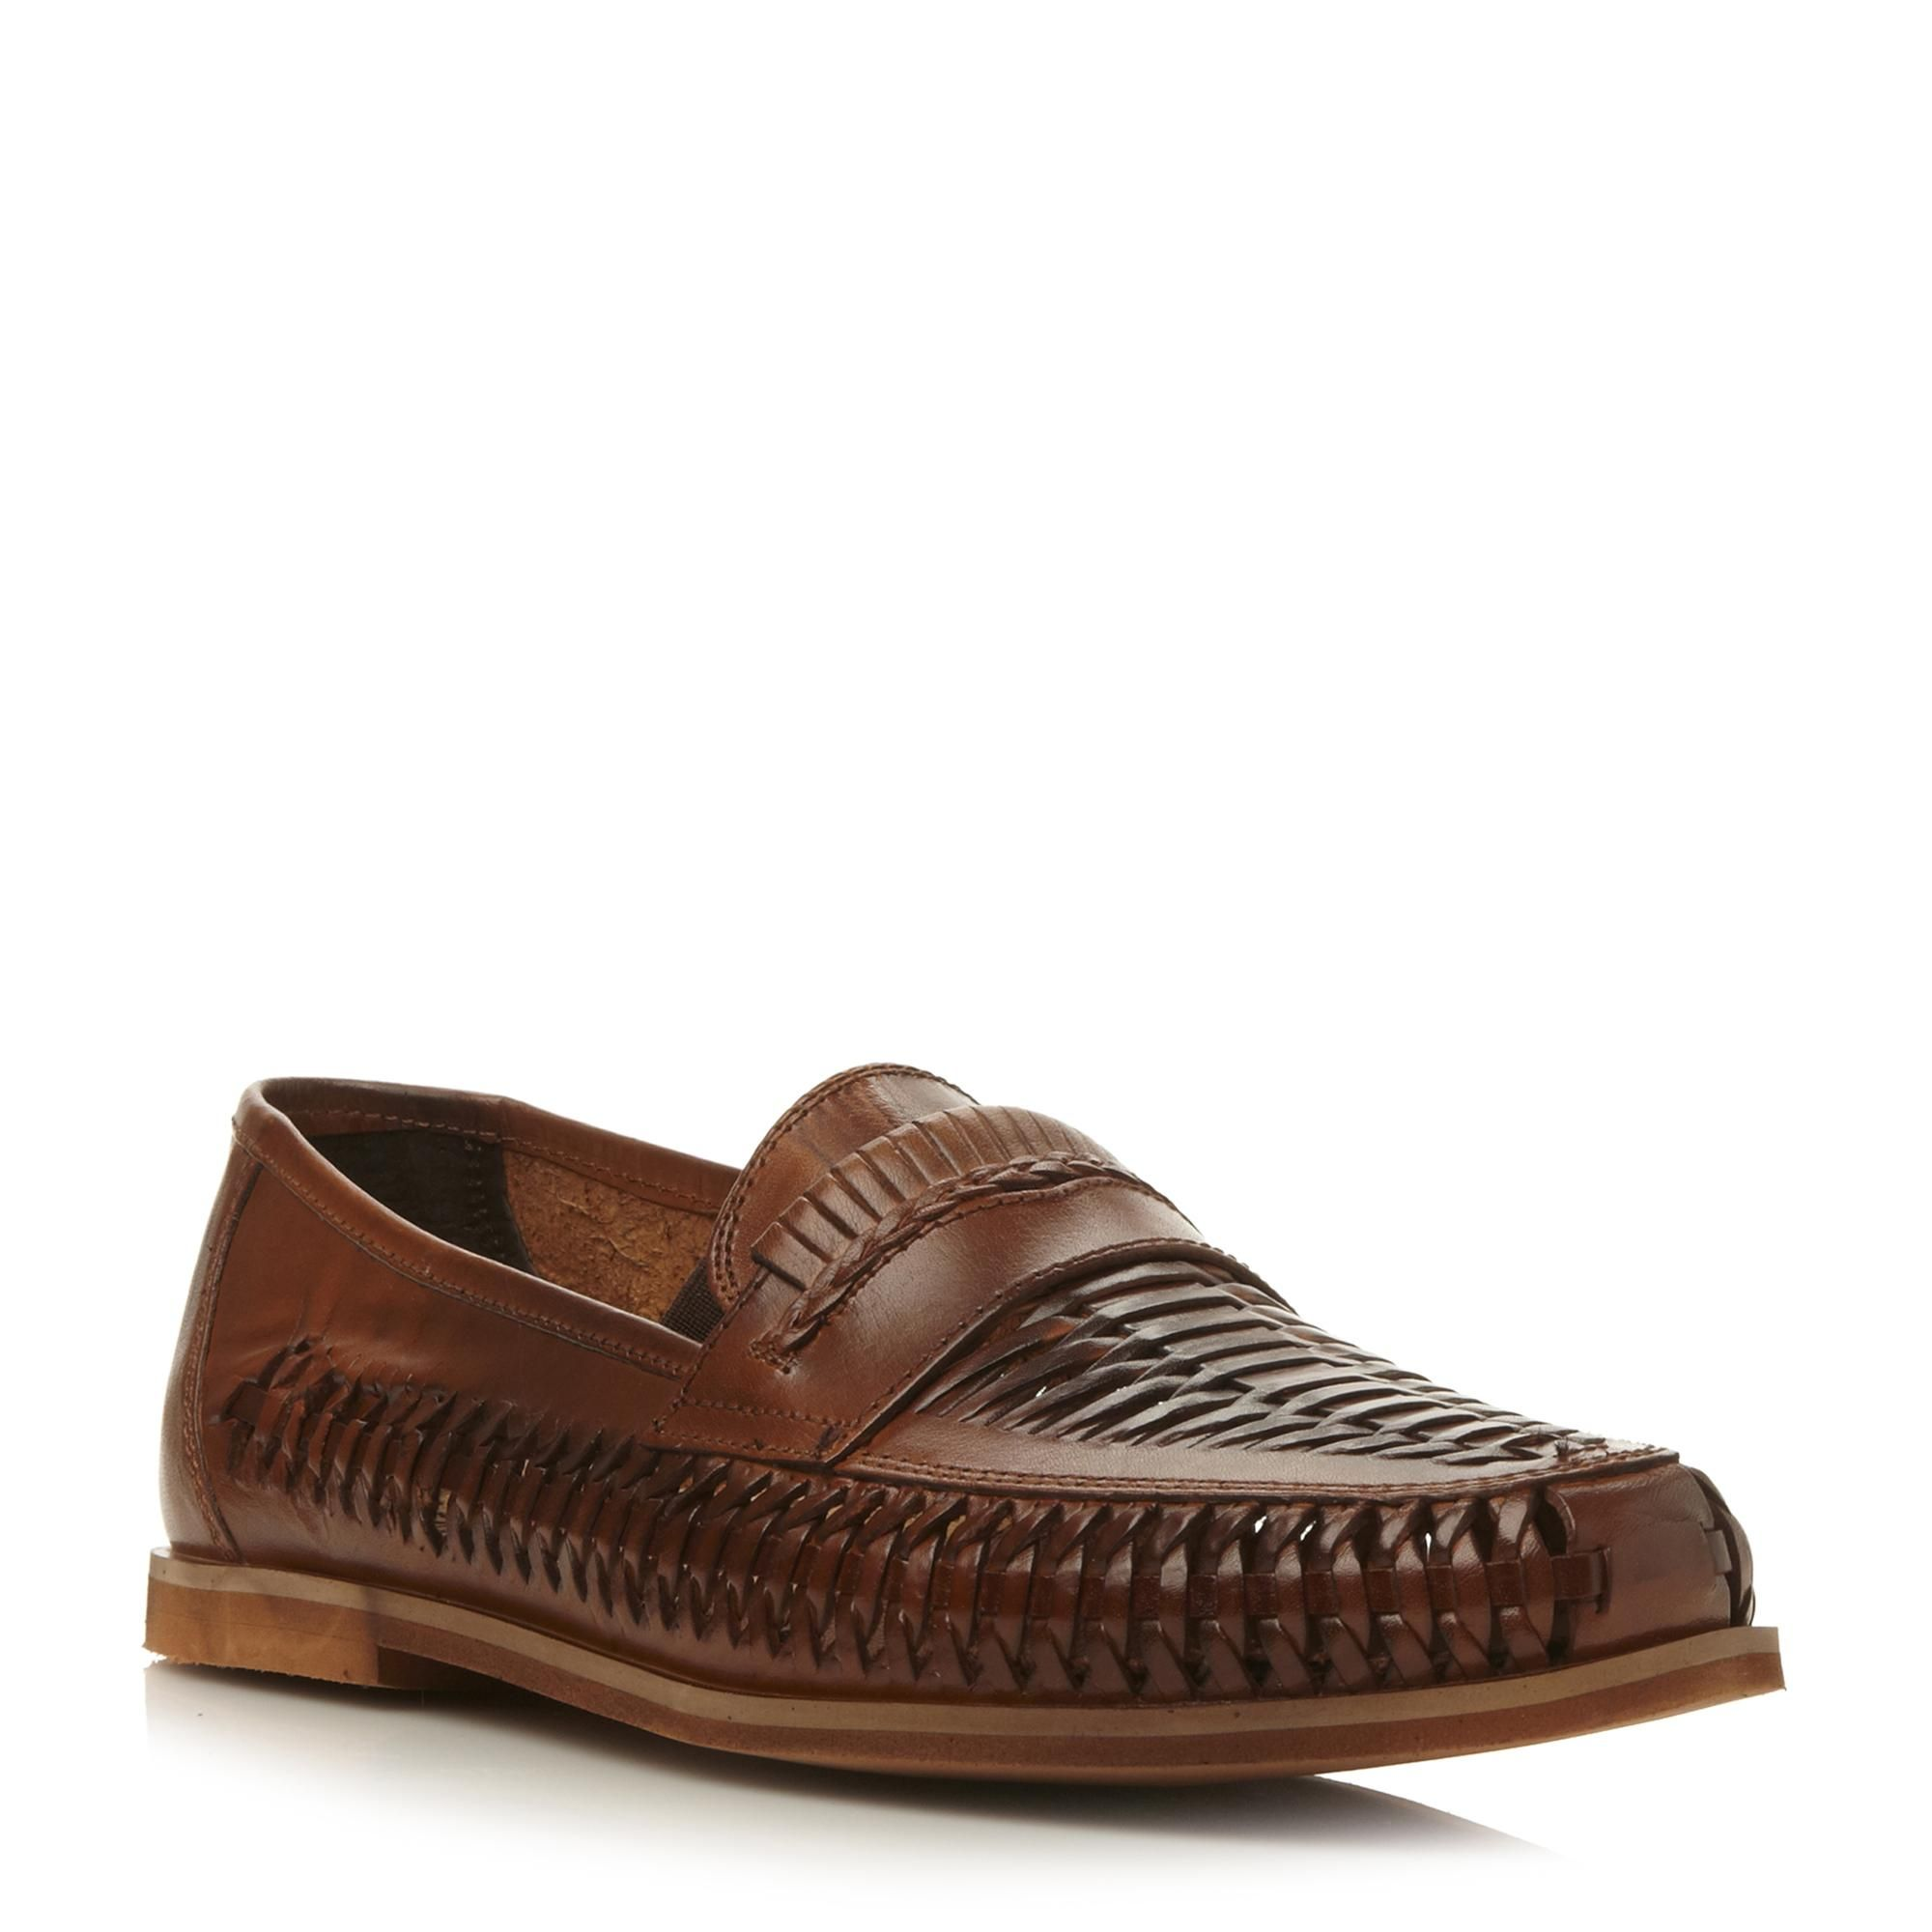 BERTIE MENS BRYANT PARK - Leather Woven Moccasin - tan | Dune Shoes Online